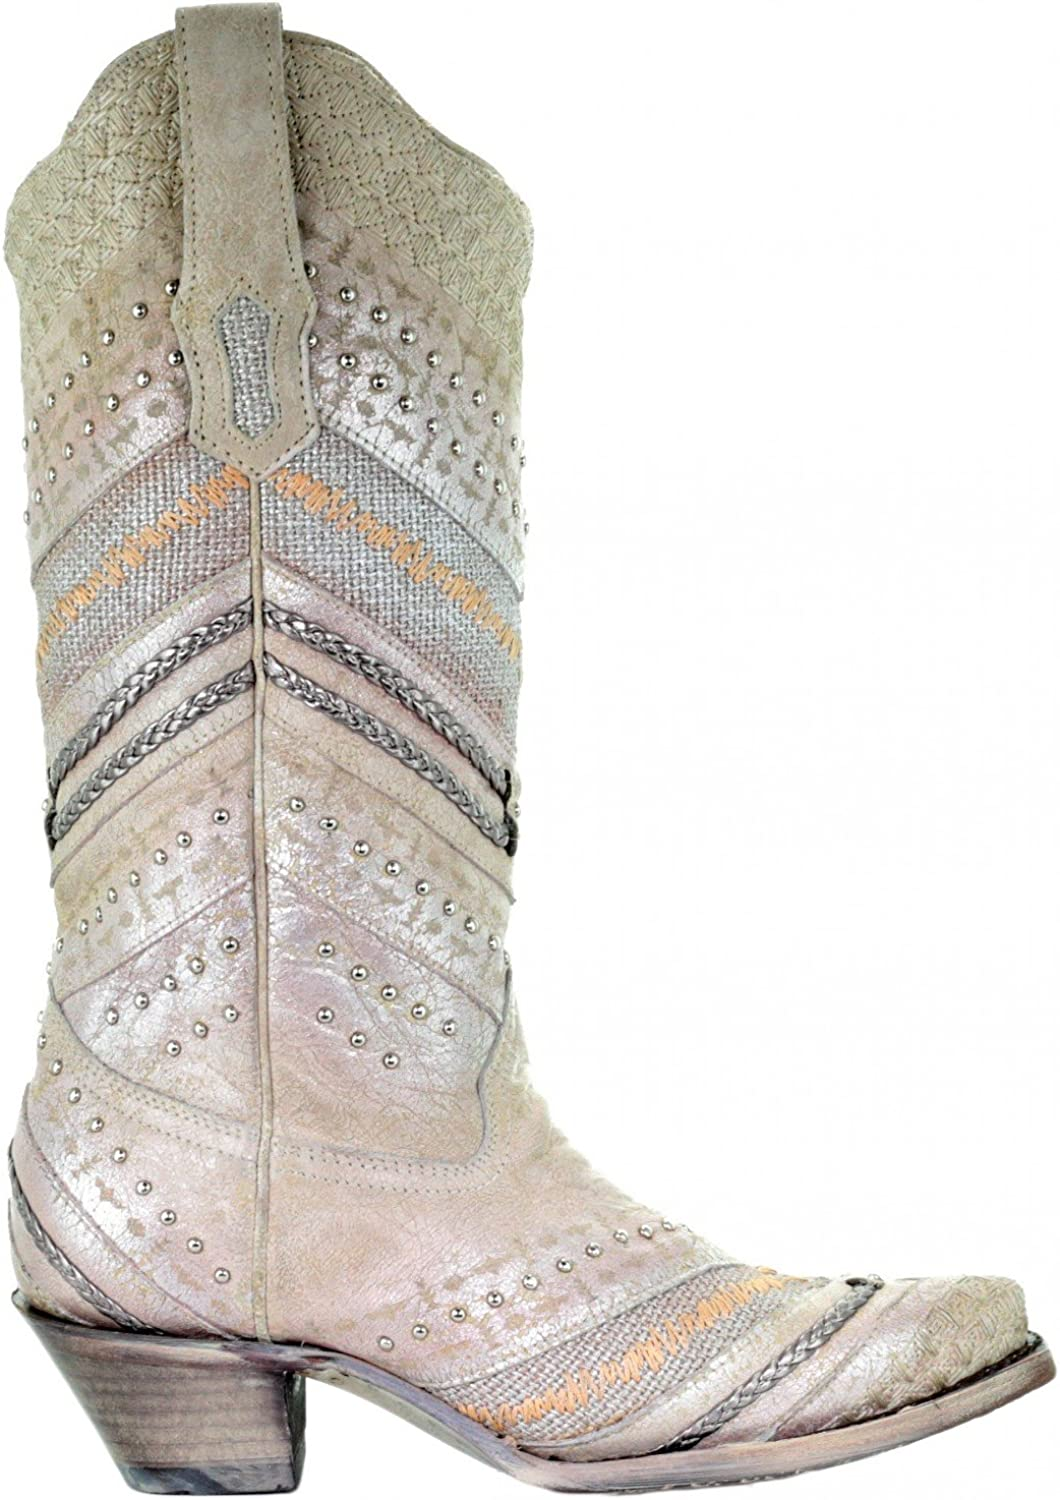 Corral A3604 Metallic Embroidered Studded Western Boots